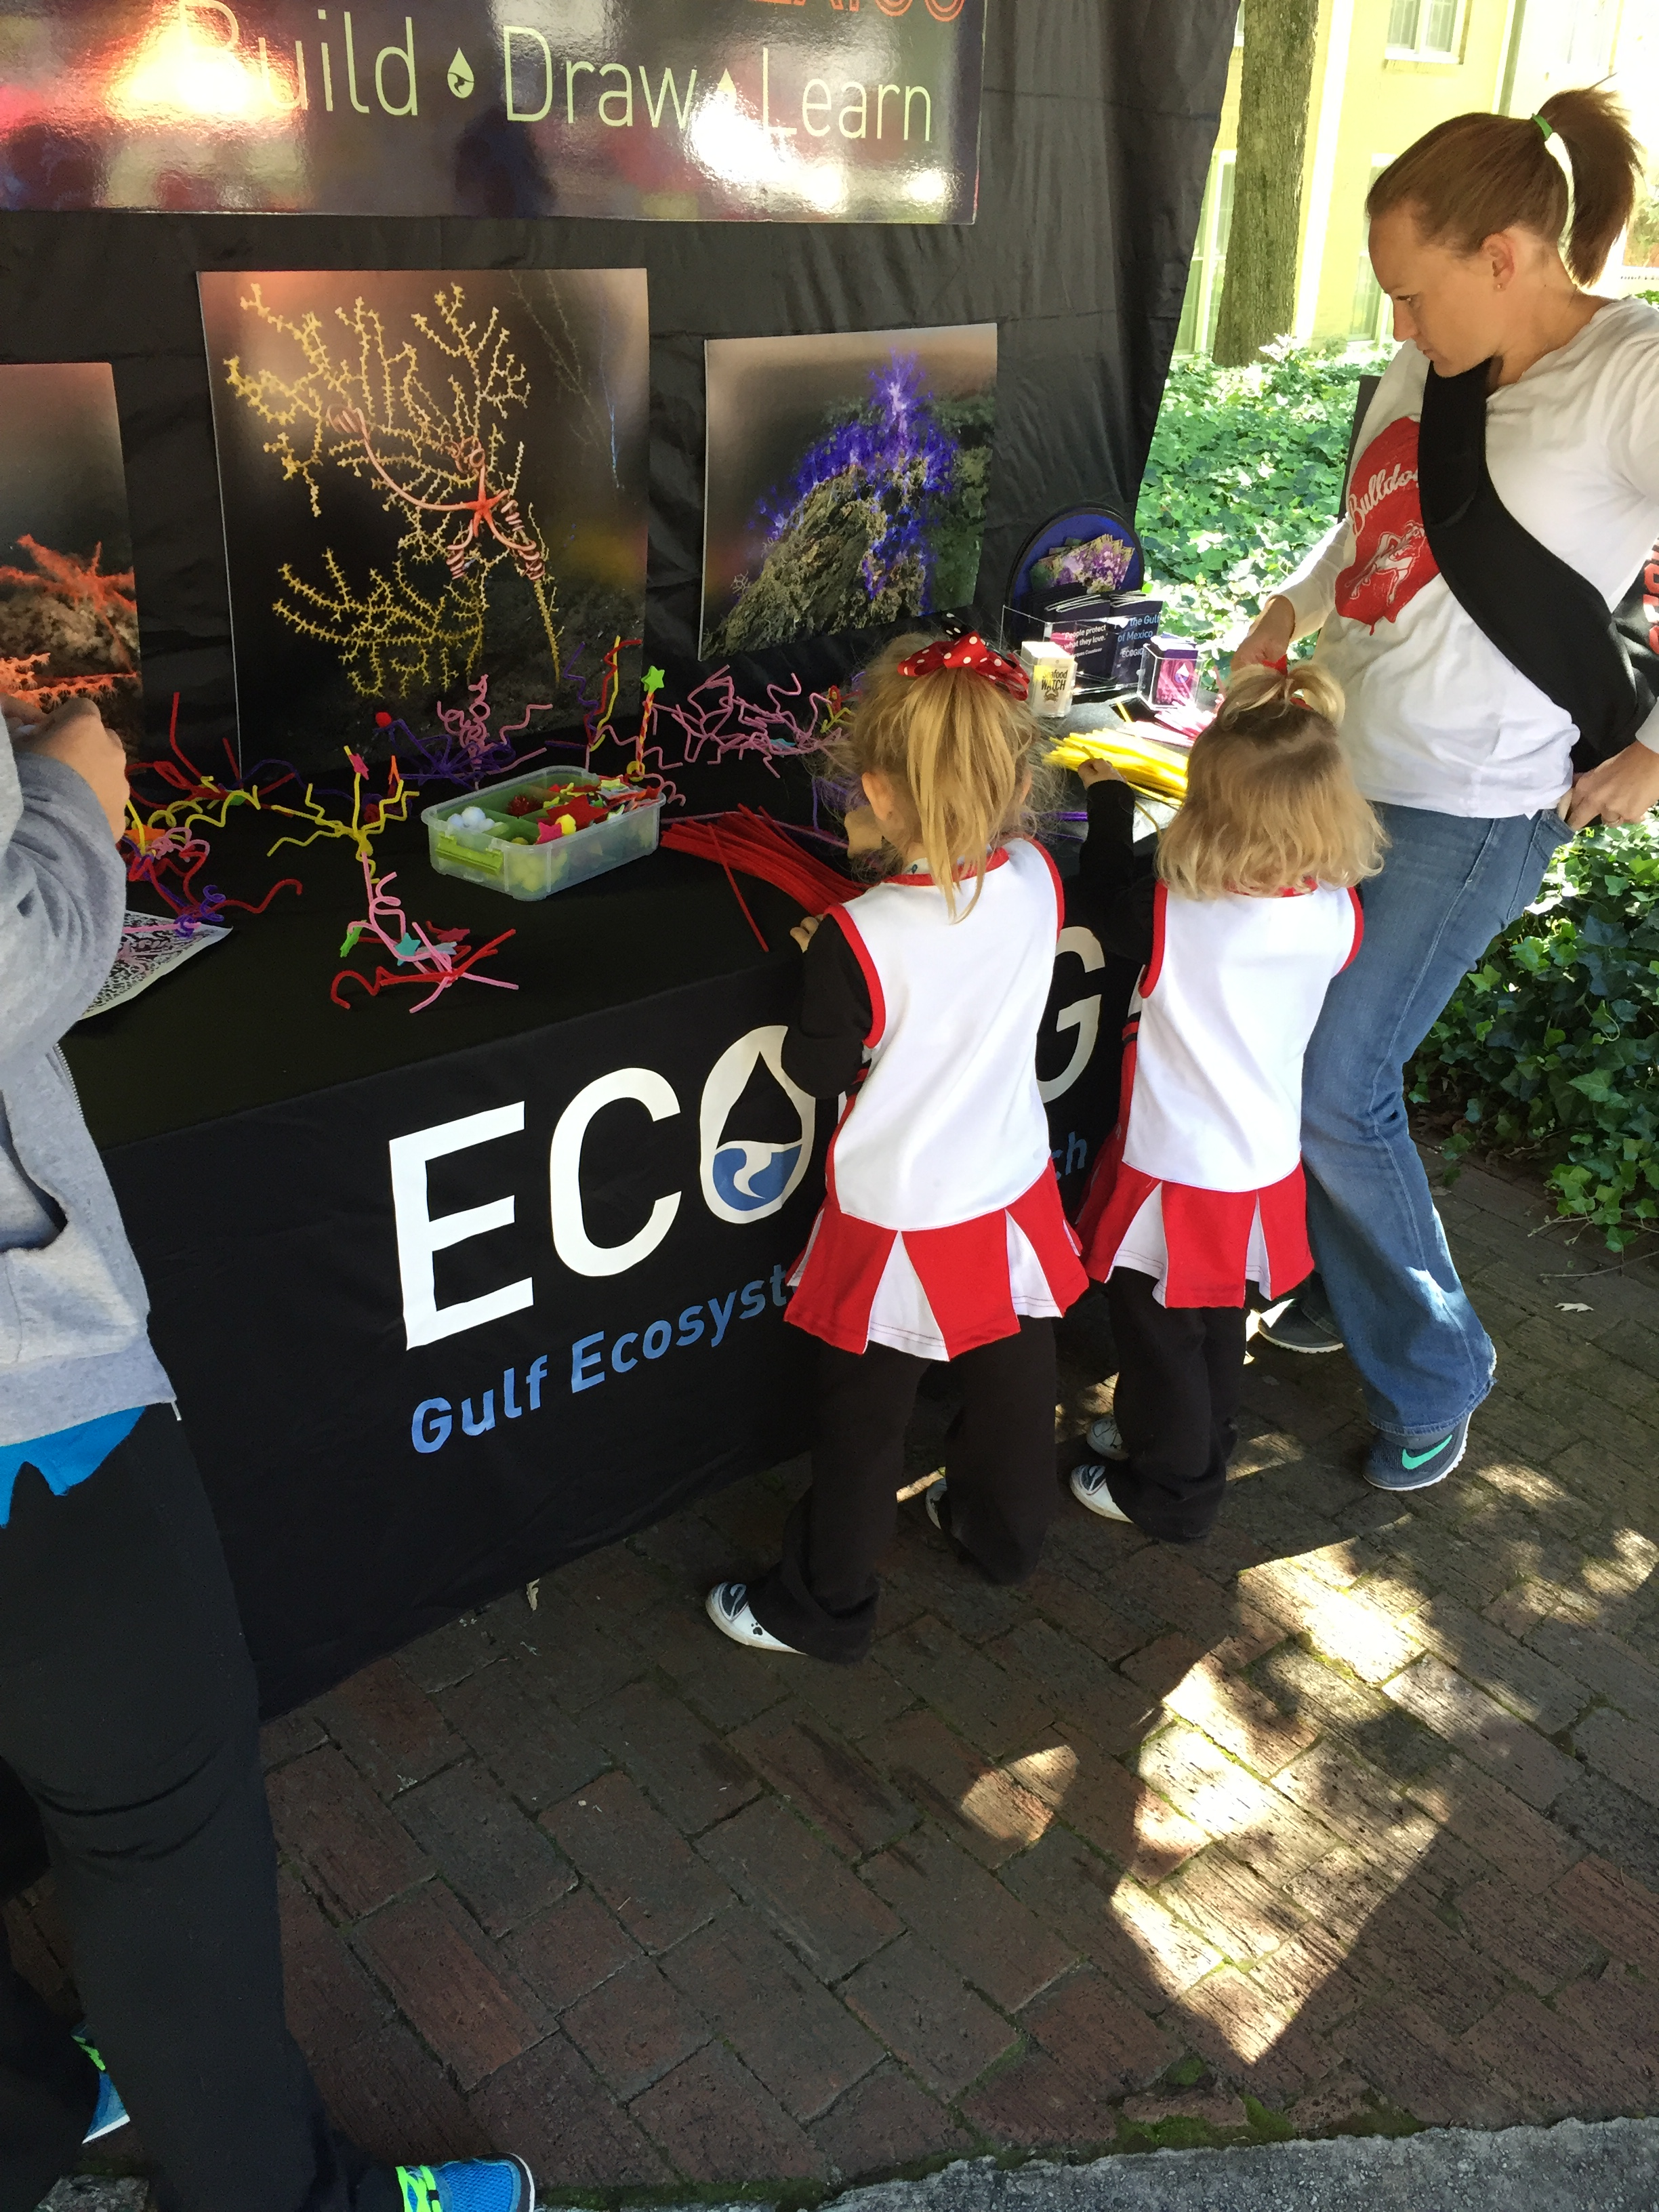 <div style='color:#000000;'><br /><br /><h2>2015 UGA football home game. Visitors check out the deep sea coral build, draw, learn station</h2>(C)&nbsp;ECOGIG</div>